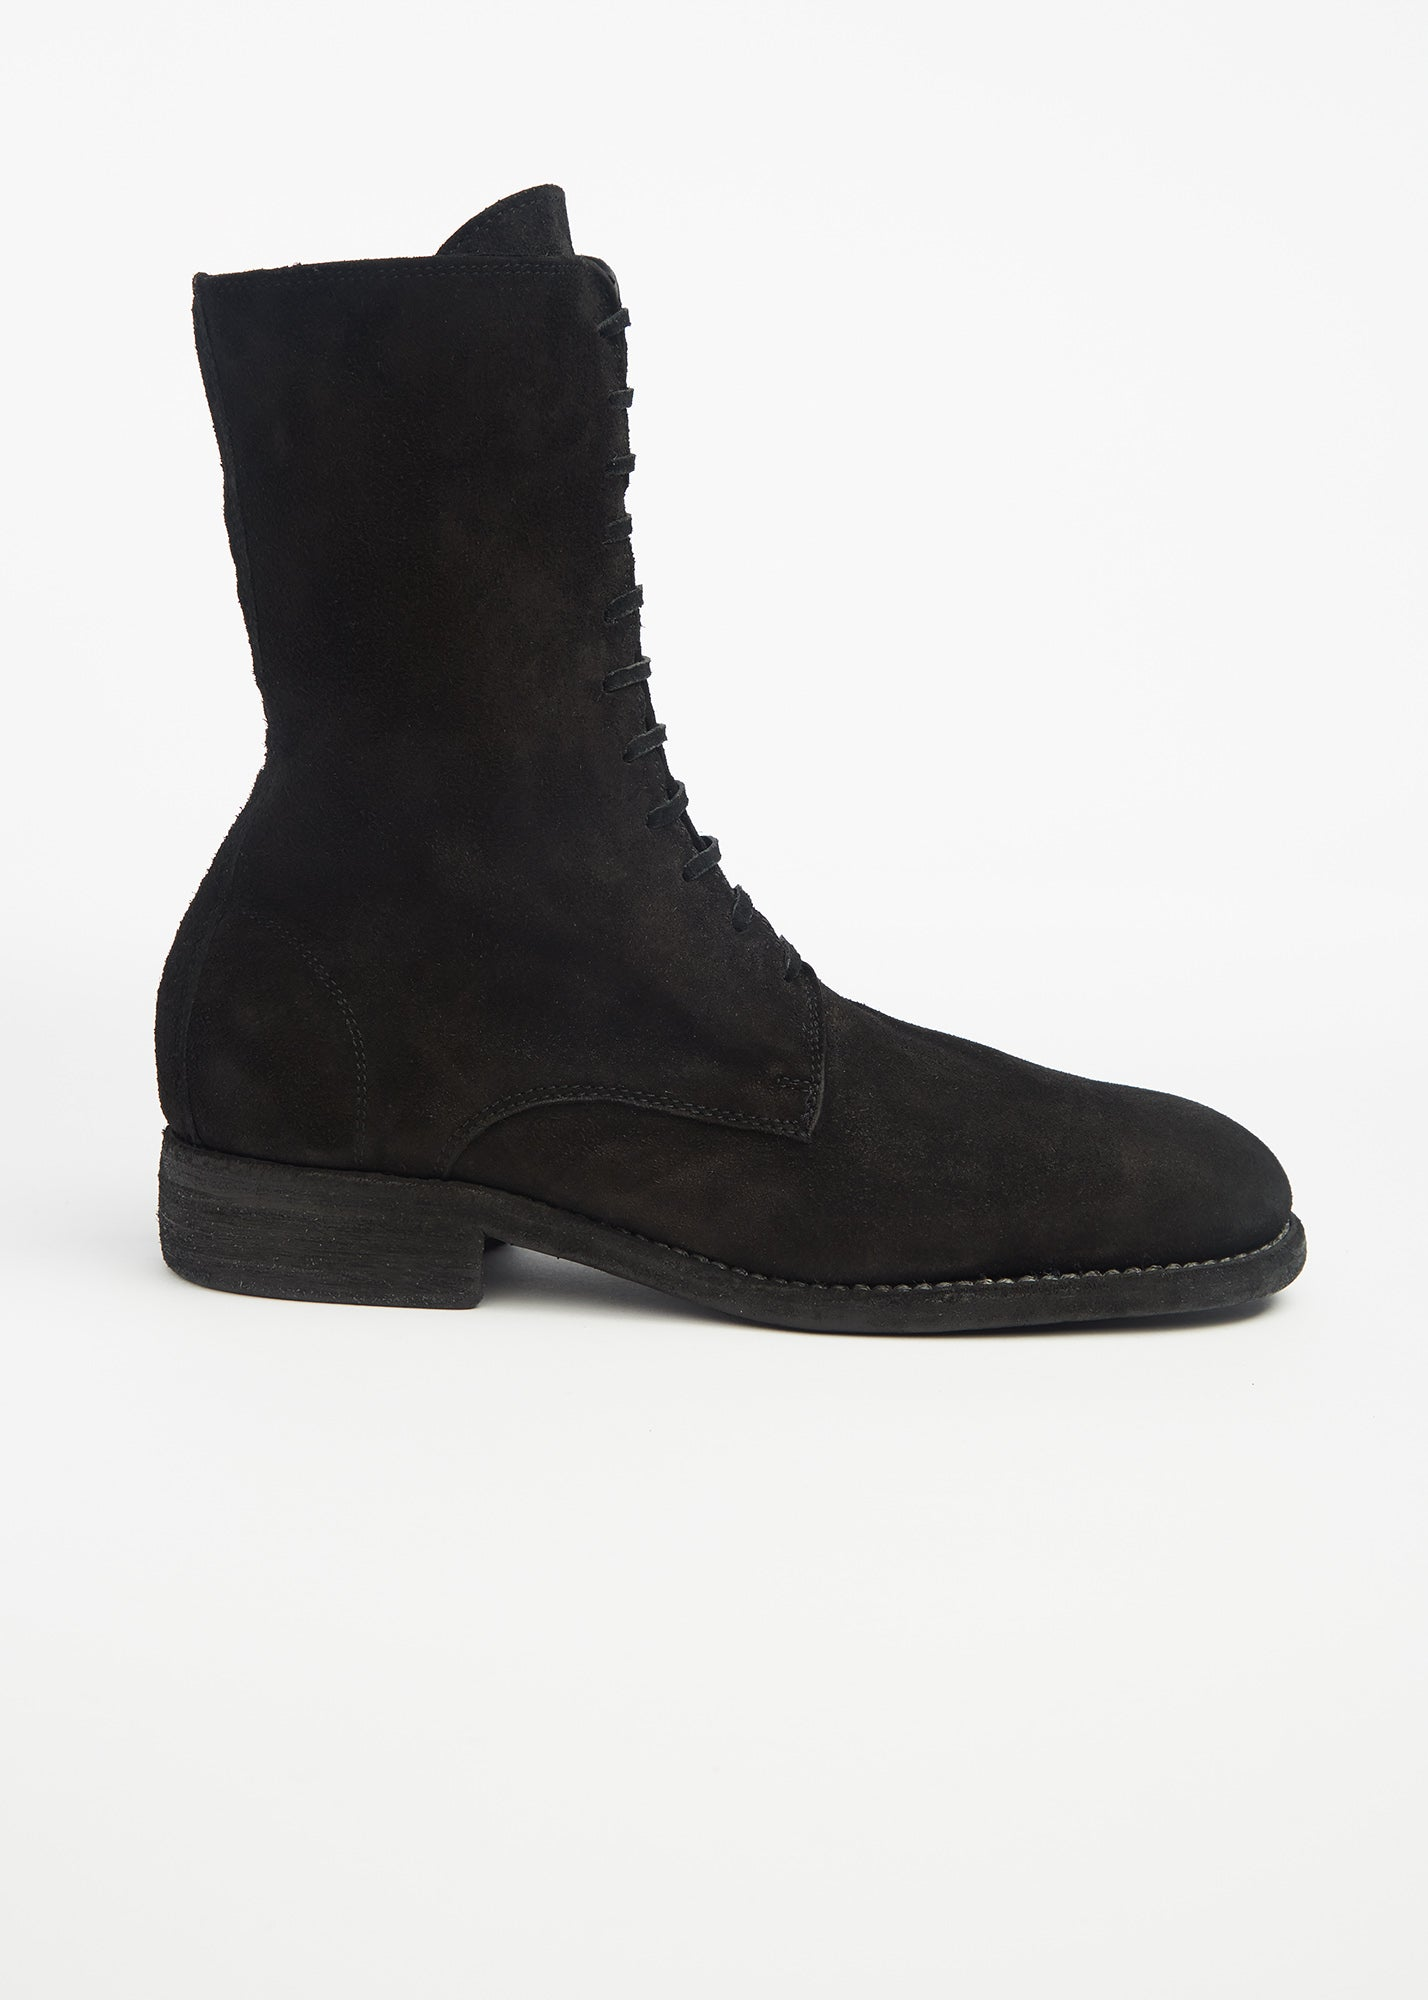 Guidi Lace Up Boots Black Suede   Tiina